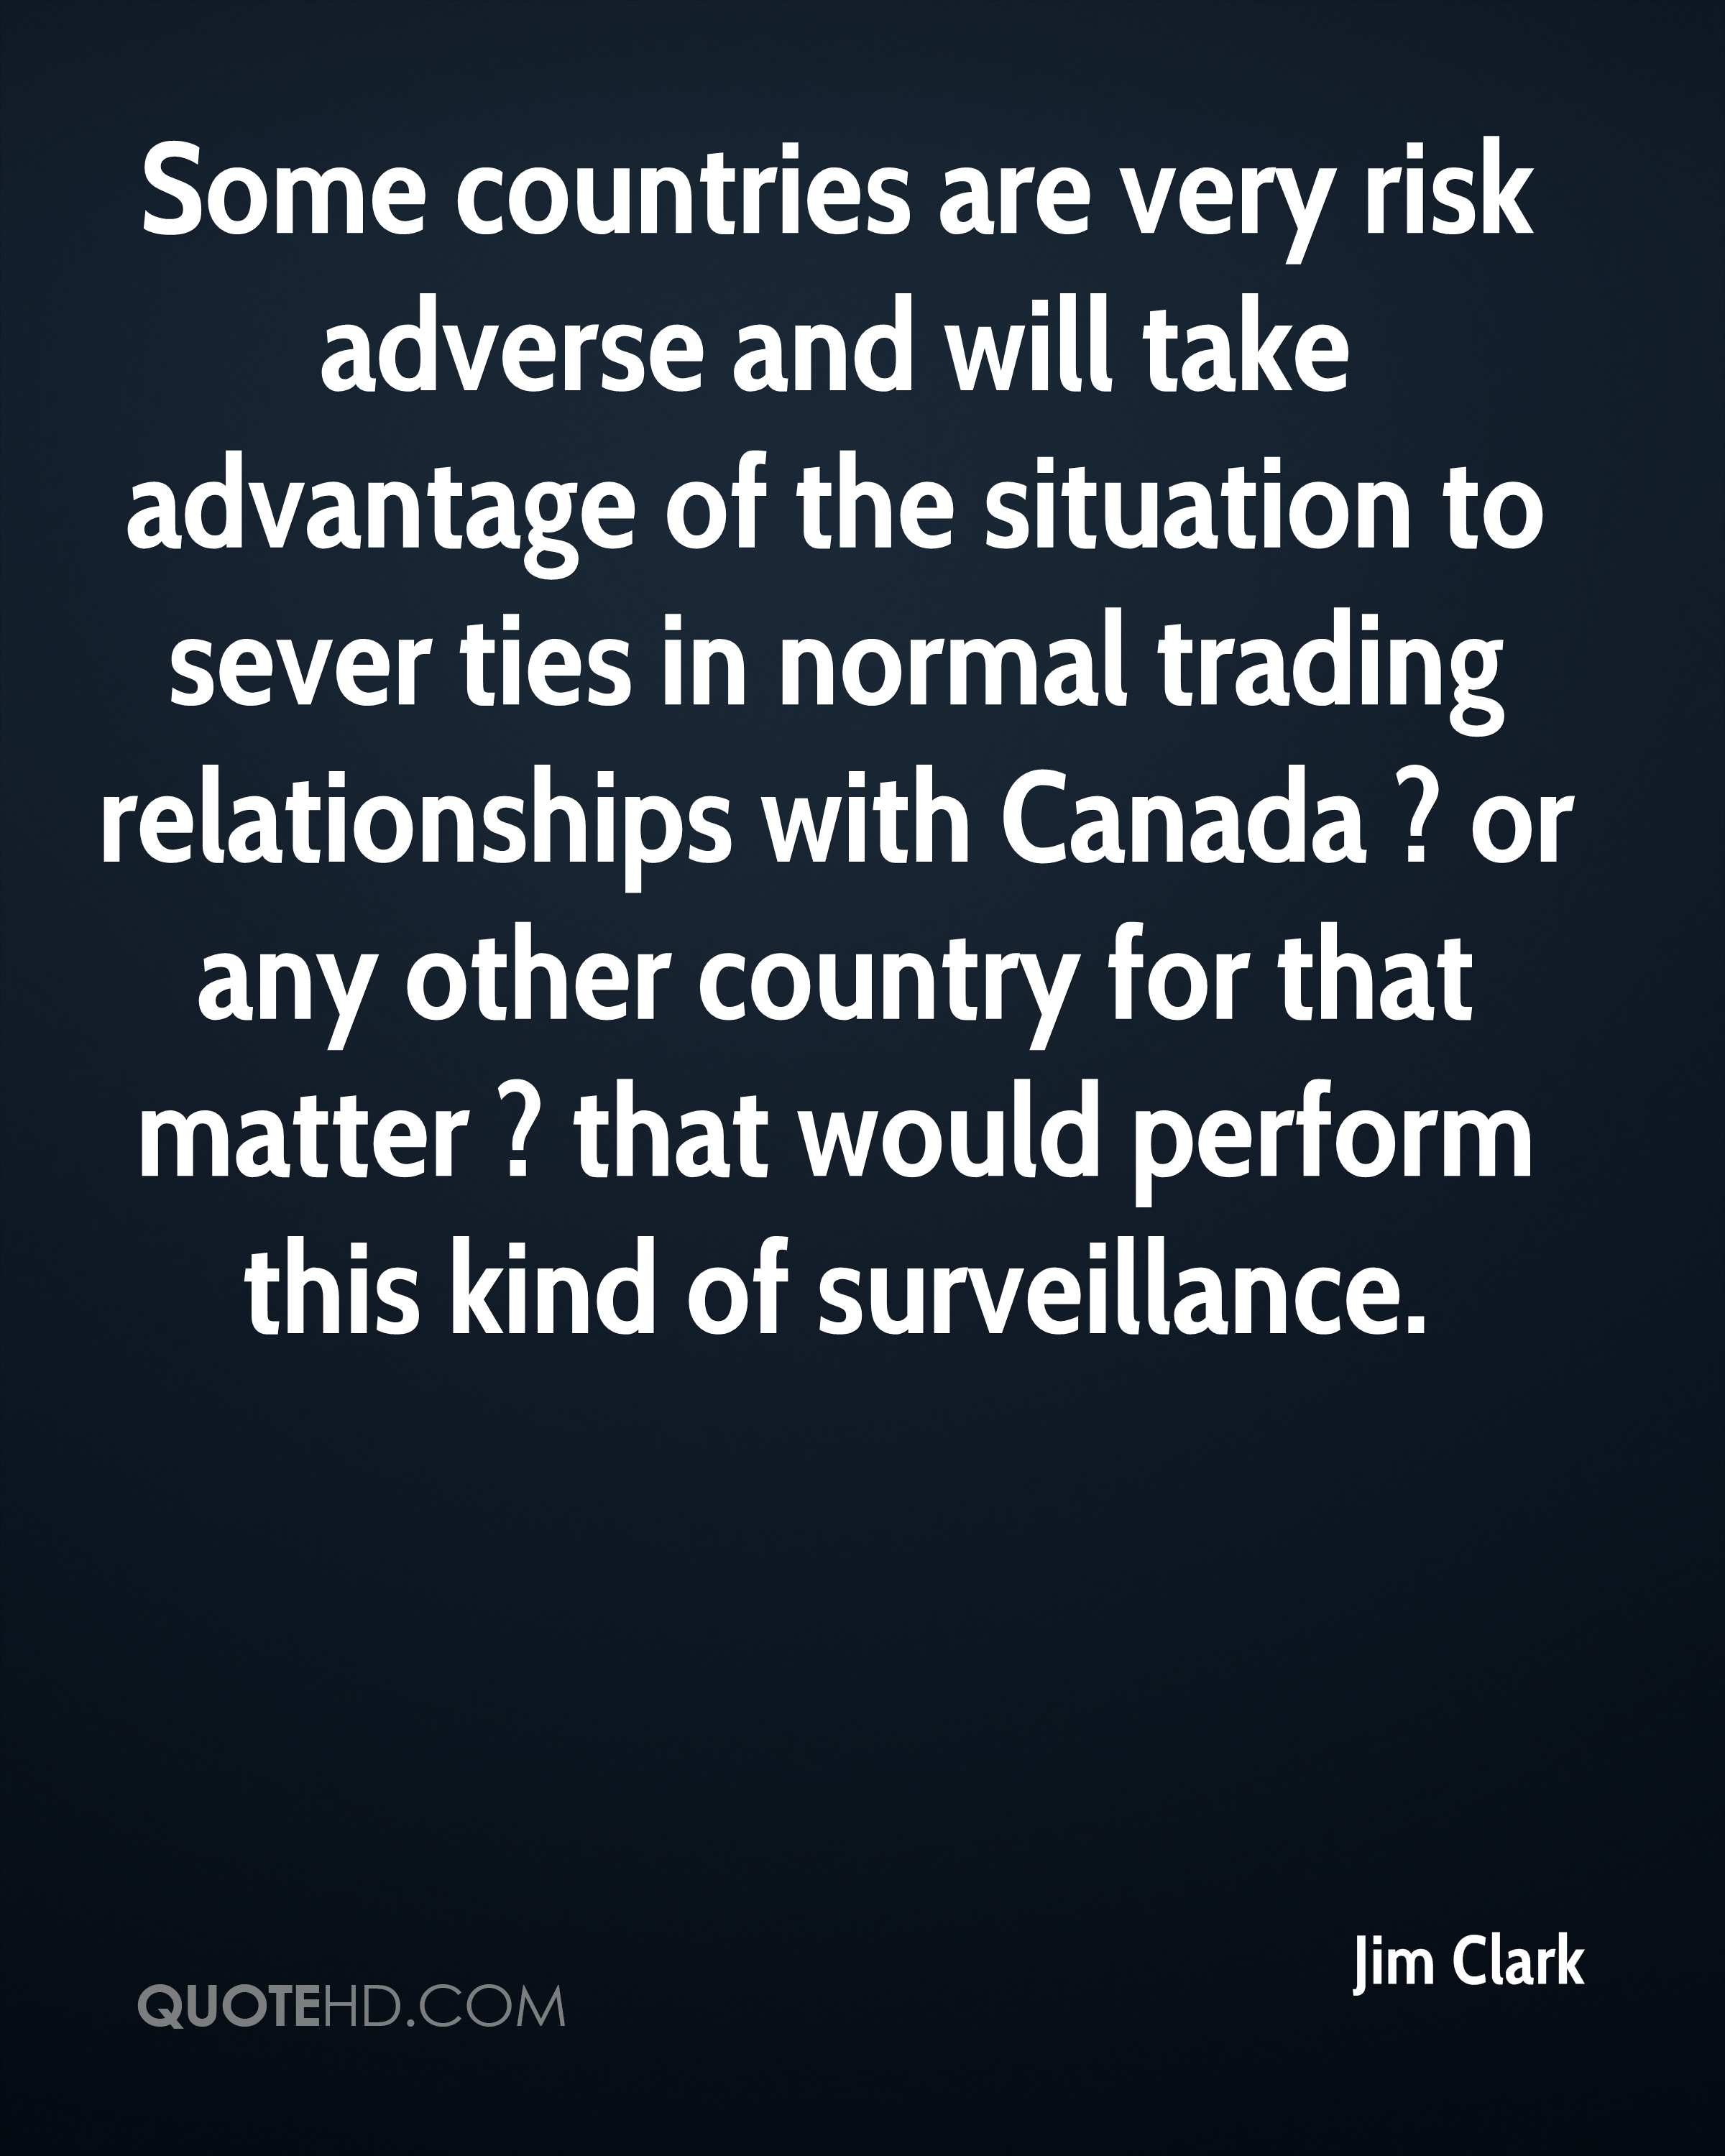 Some countries are very risk adverse and will take advantage of the situation to sever ties in normal trading relationships with Canada ? or any other country for that matter ? that would perform this kind of surveillance.